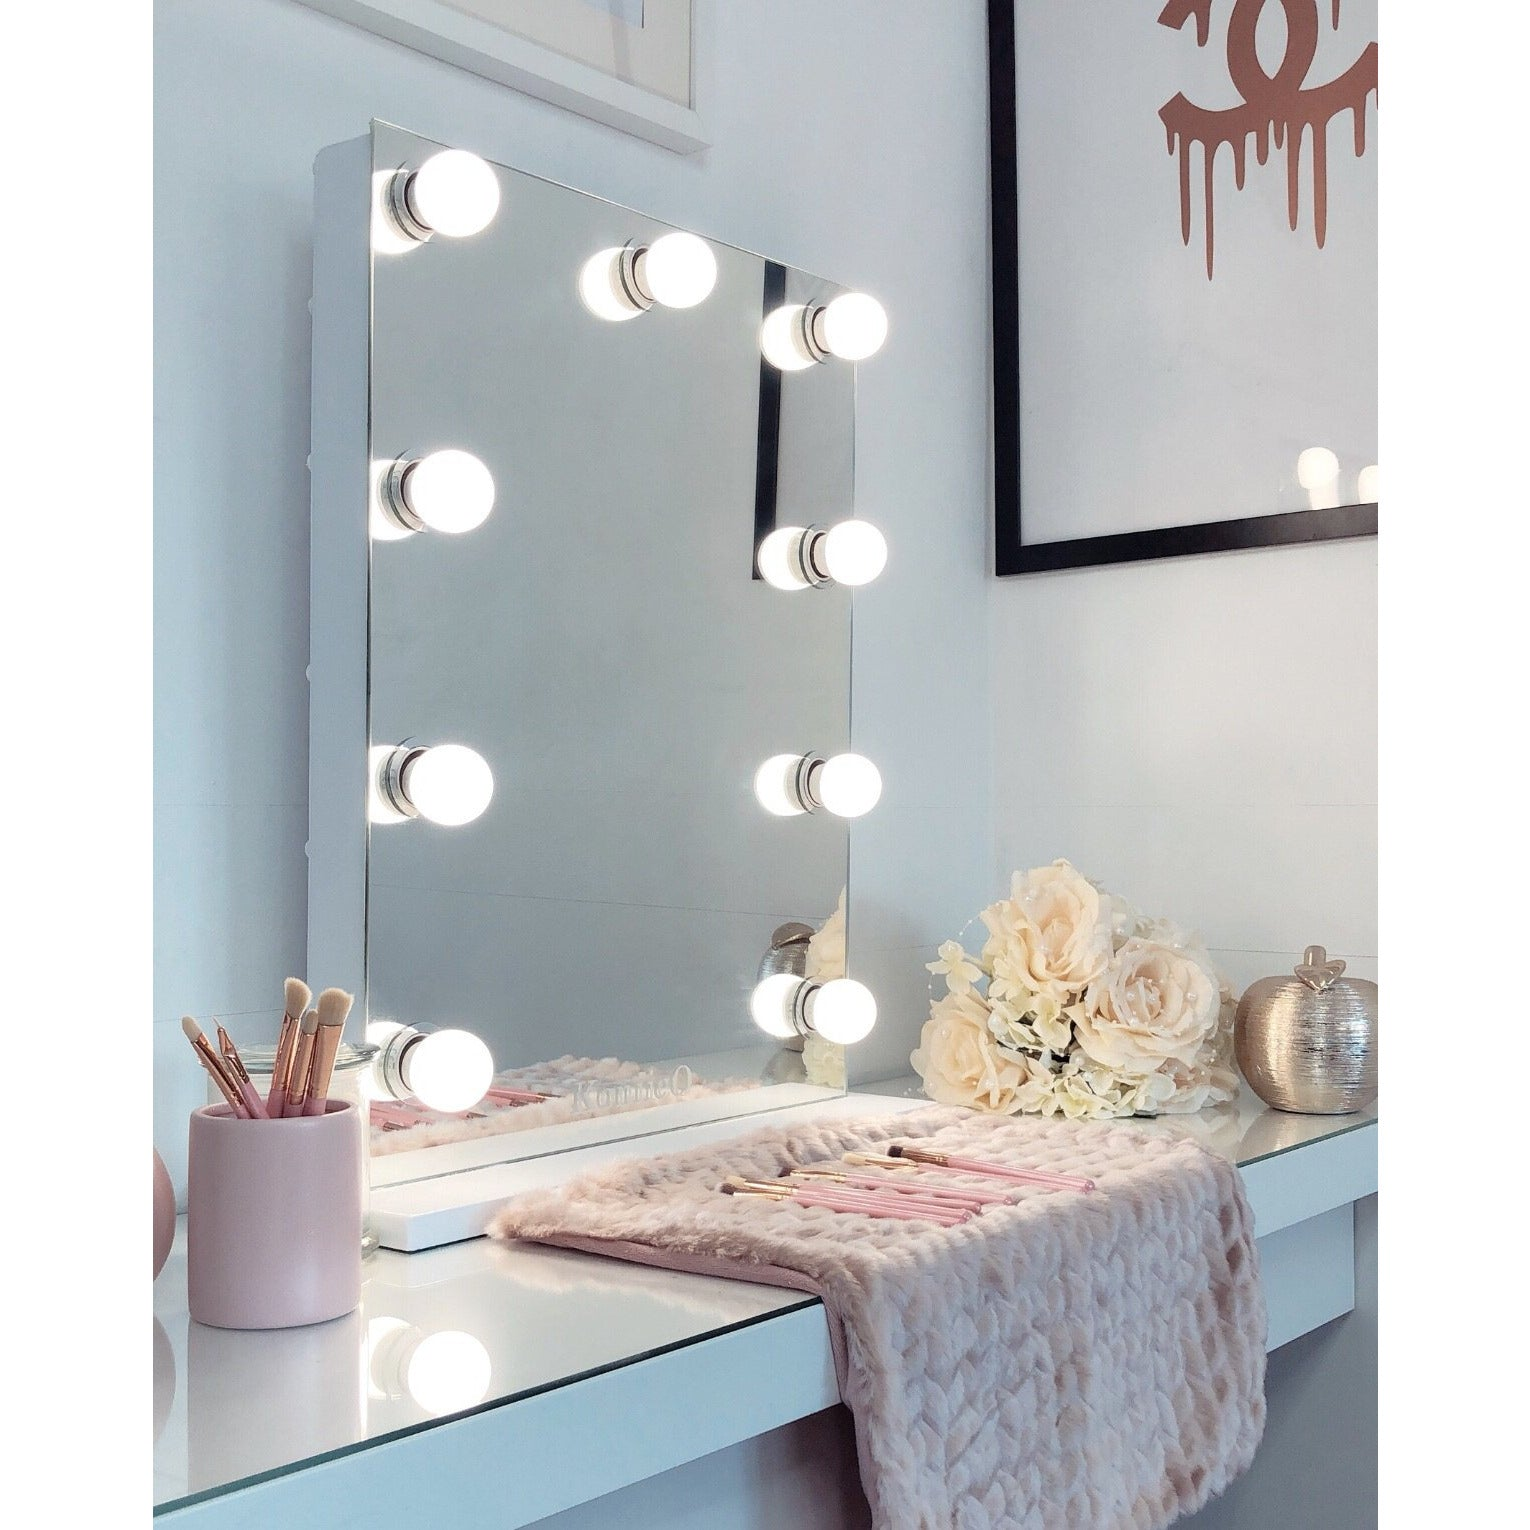 The metropolitan vanity mirror by gs spectrum